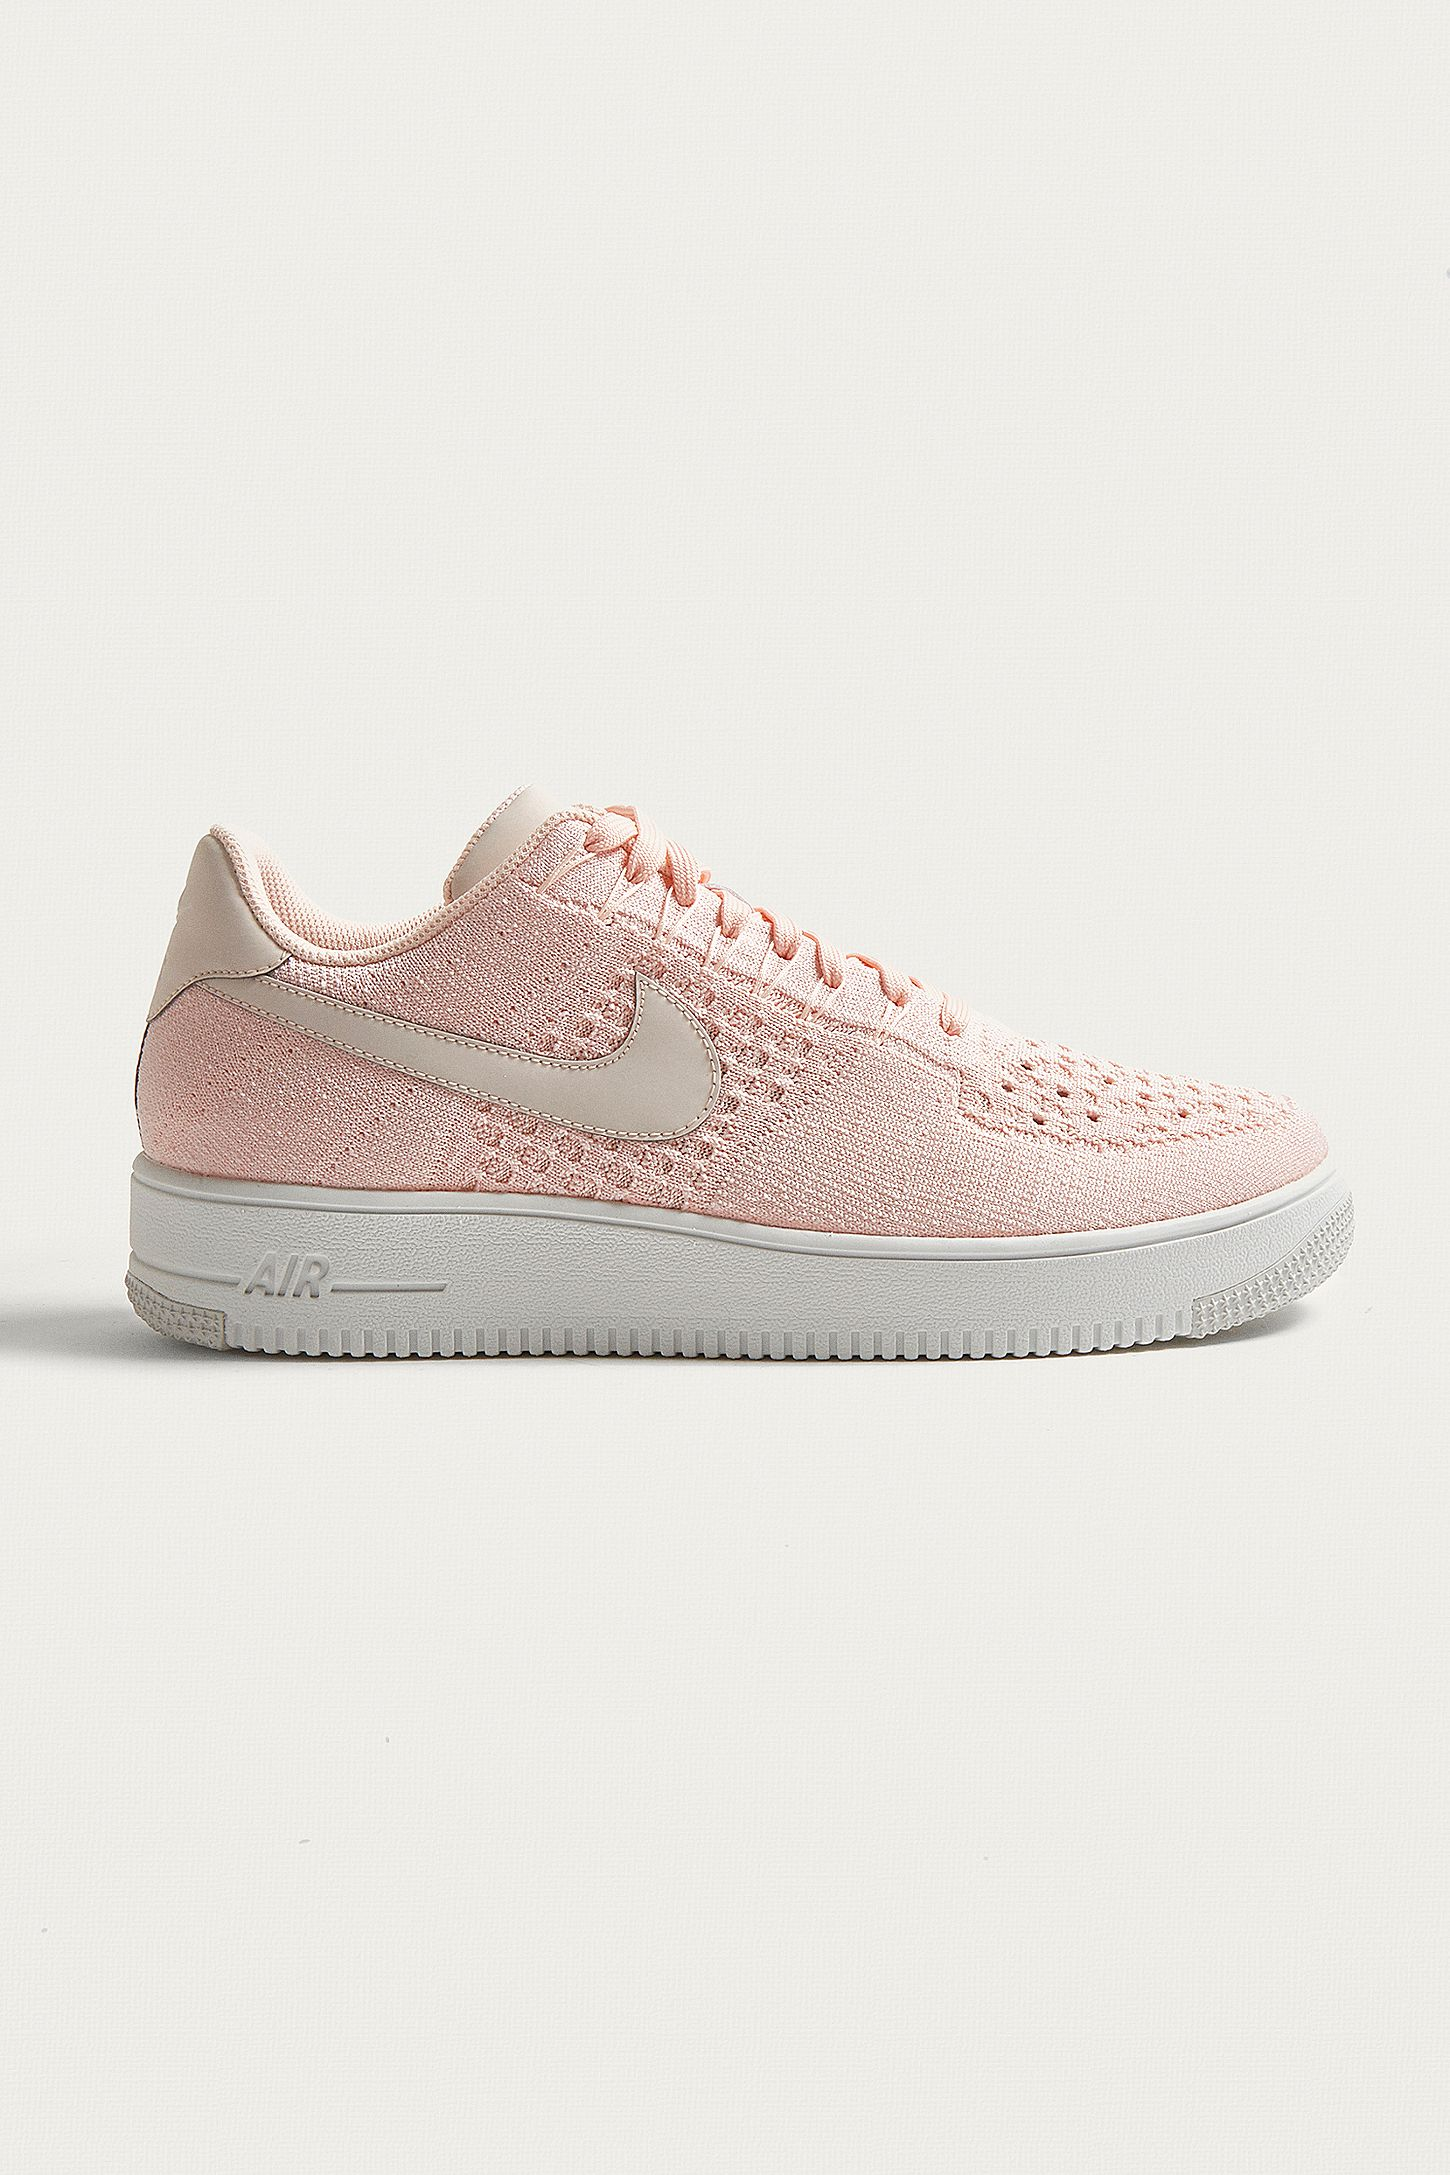 size 40 034b7 469ce Nike Air Force 1 Ultra Flyknit Low Trainers. Click on image to zoom. Hover  to zoom. Double Tap to Zoom